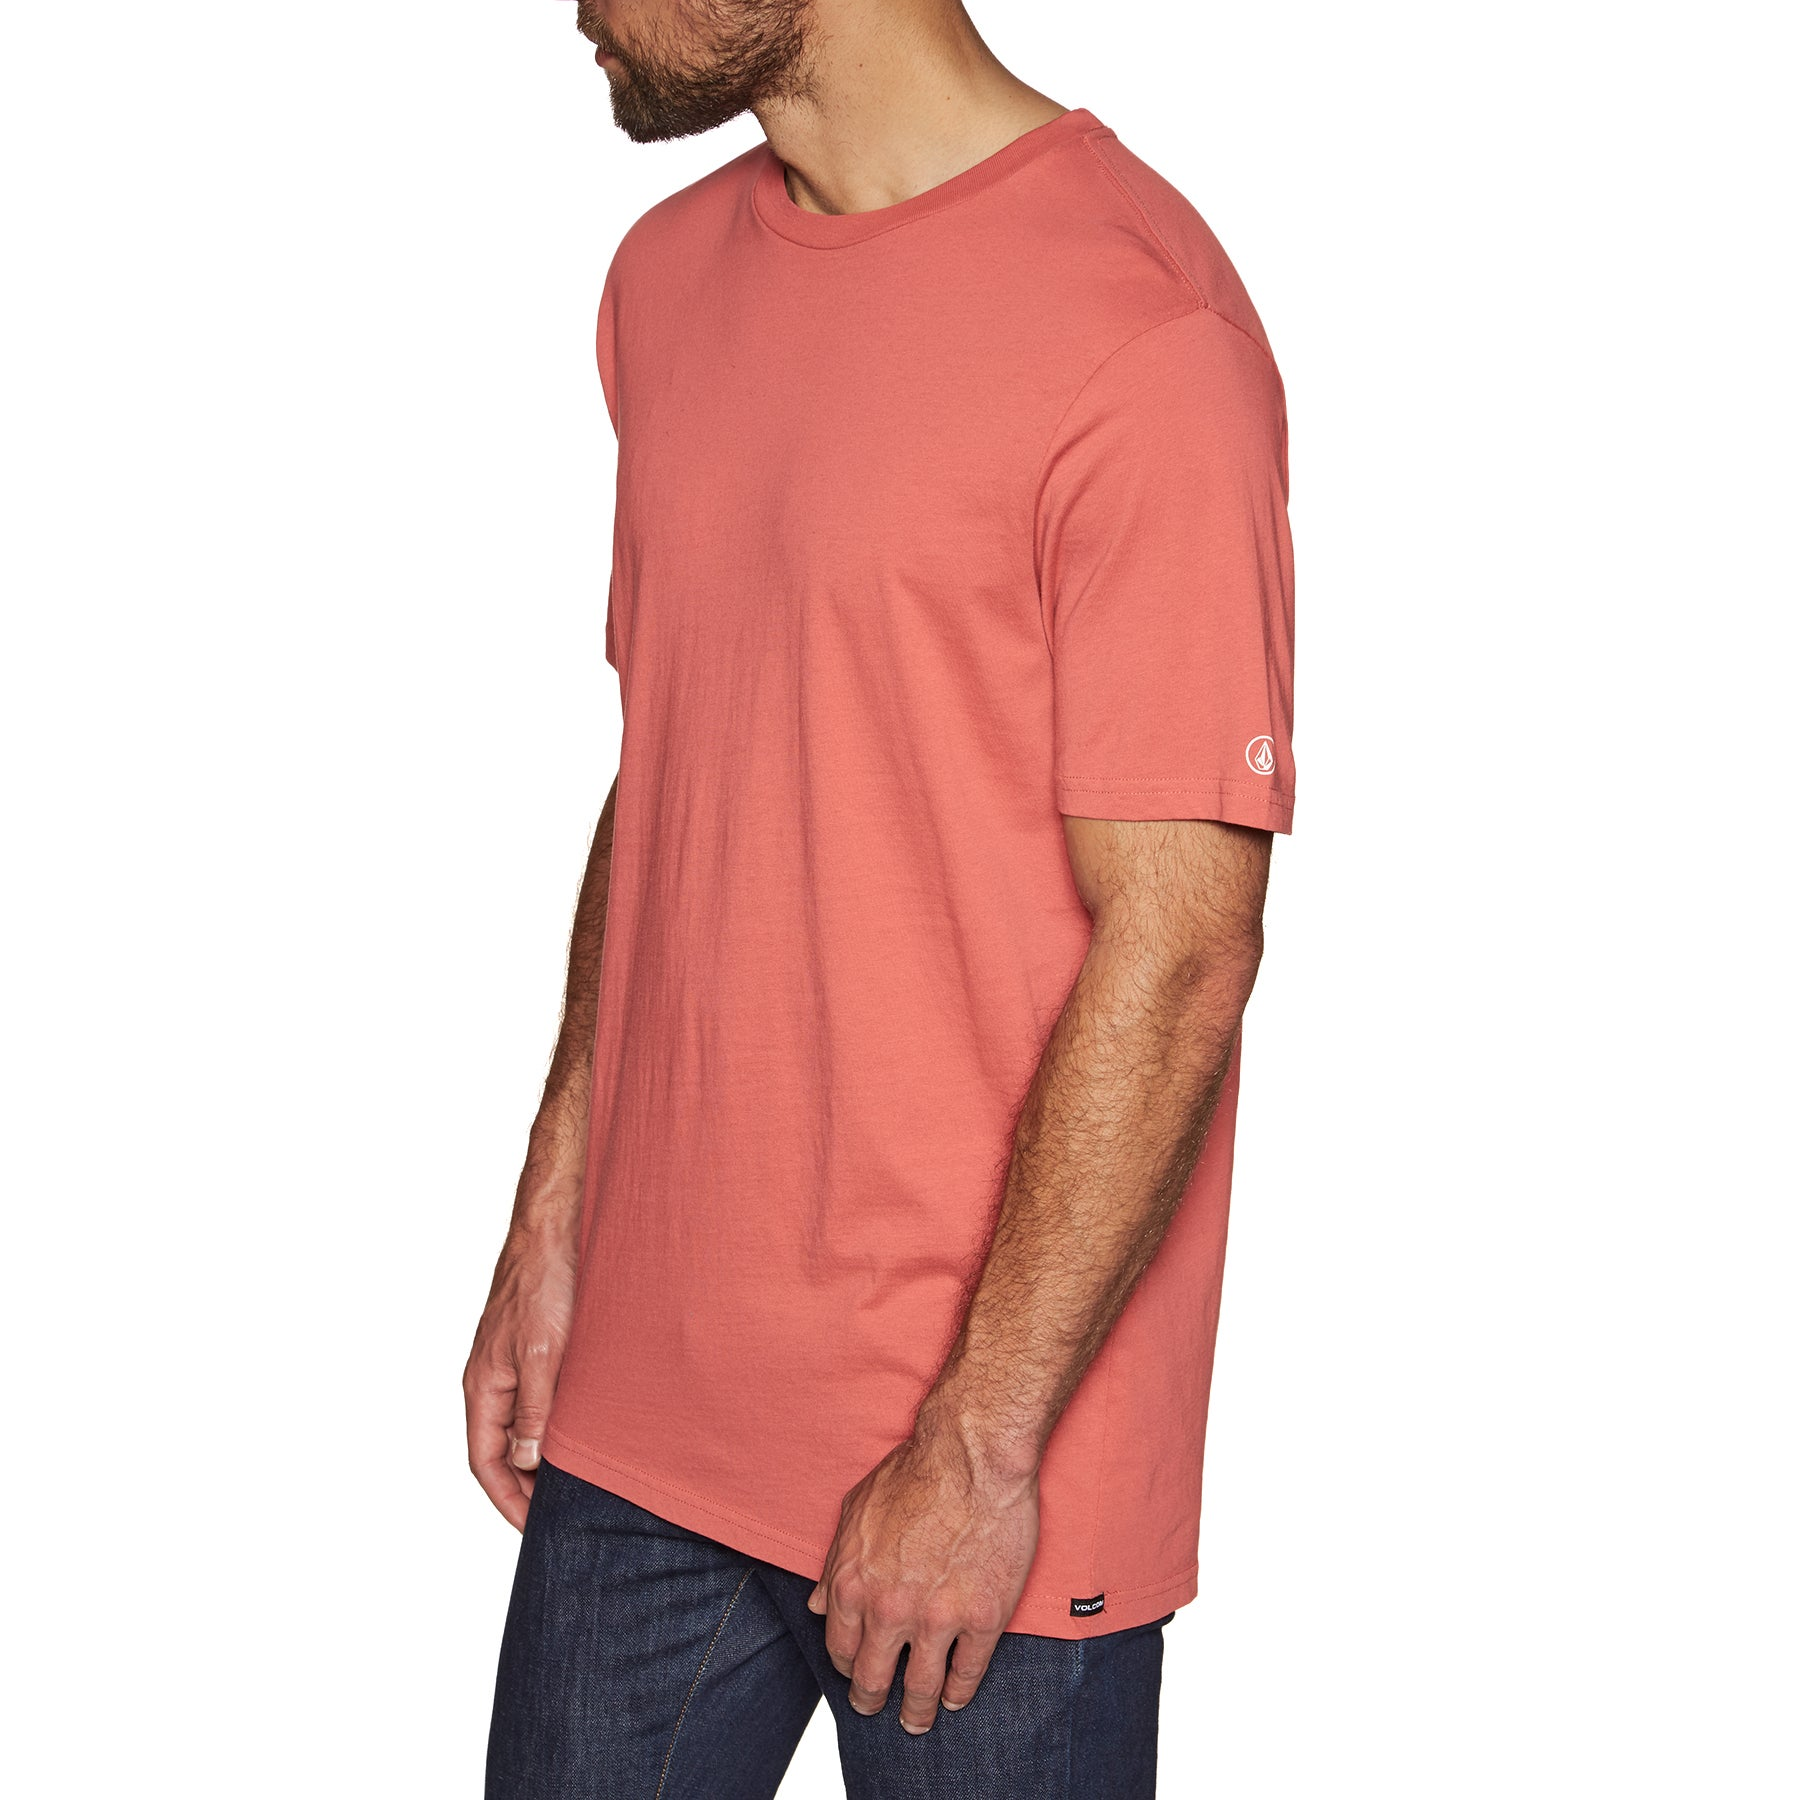 Volcom Solid Short Sleeve T-Shirt - Mineral Red